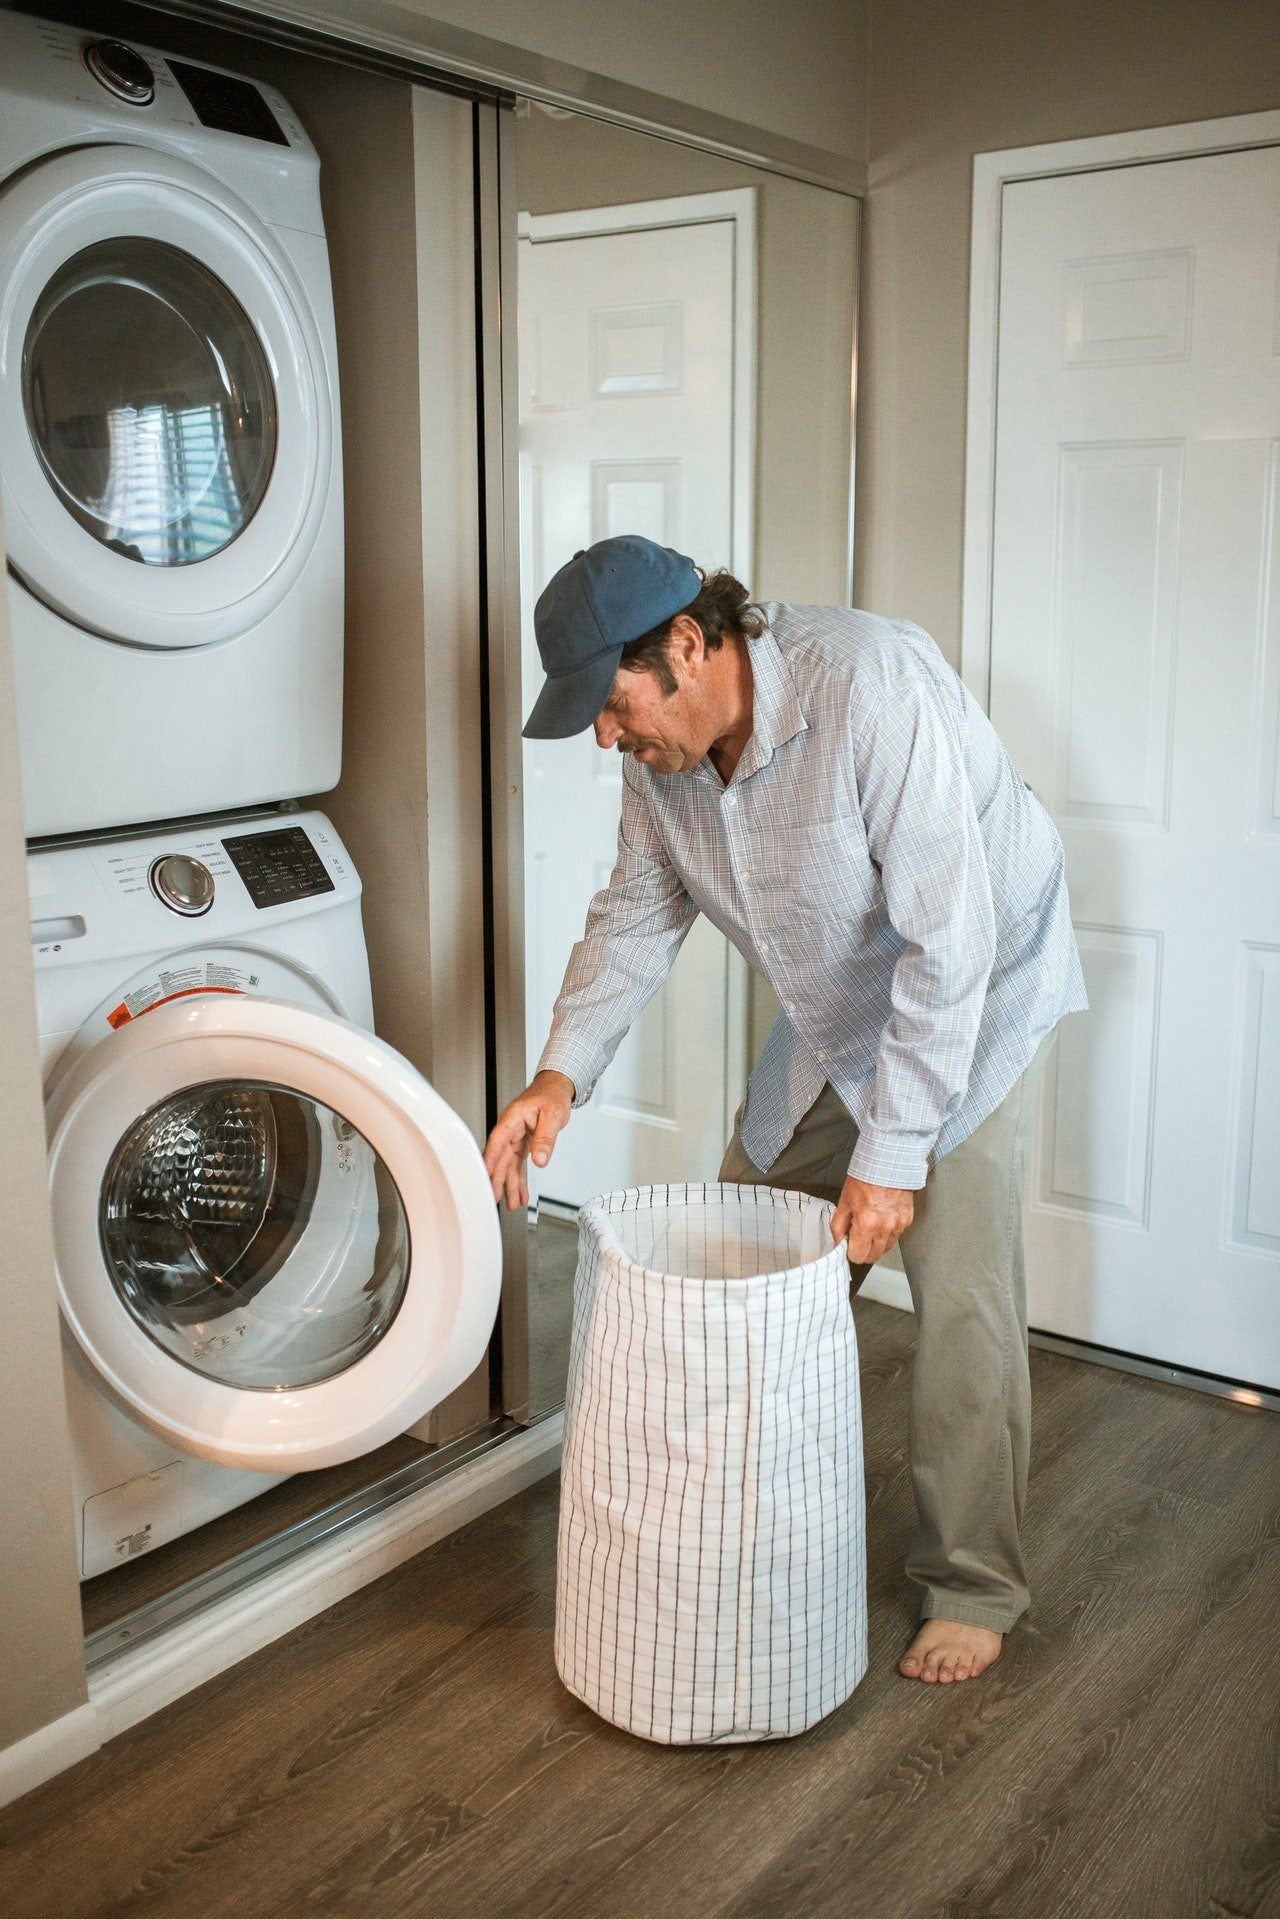 Man putting clothes in the washing machine | Source: Pexels